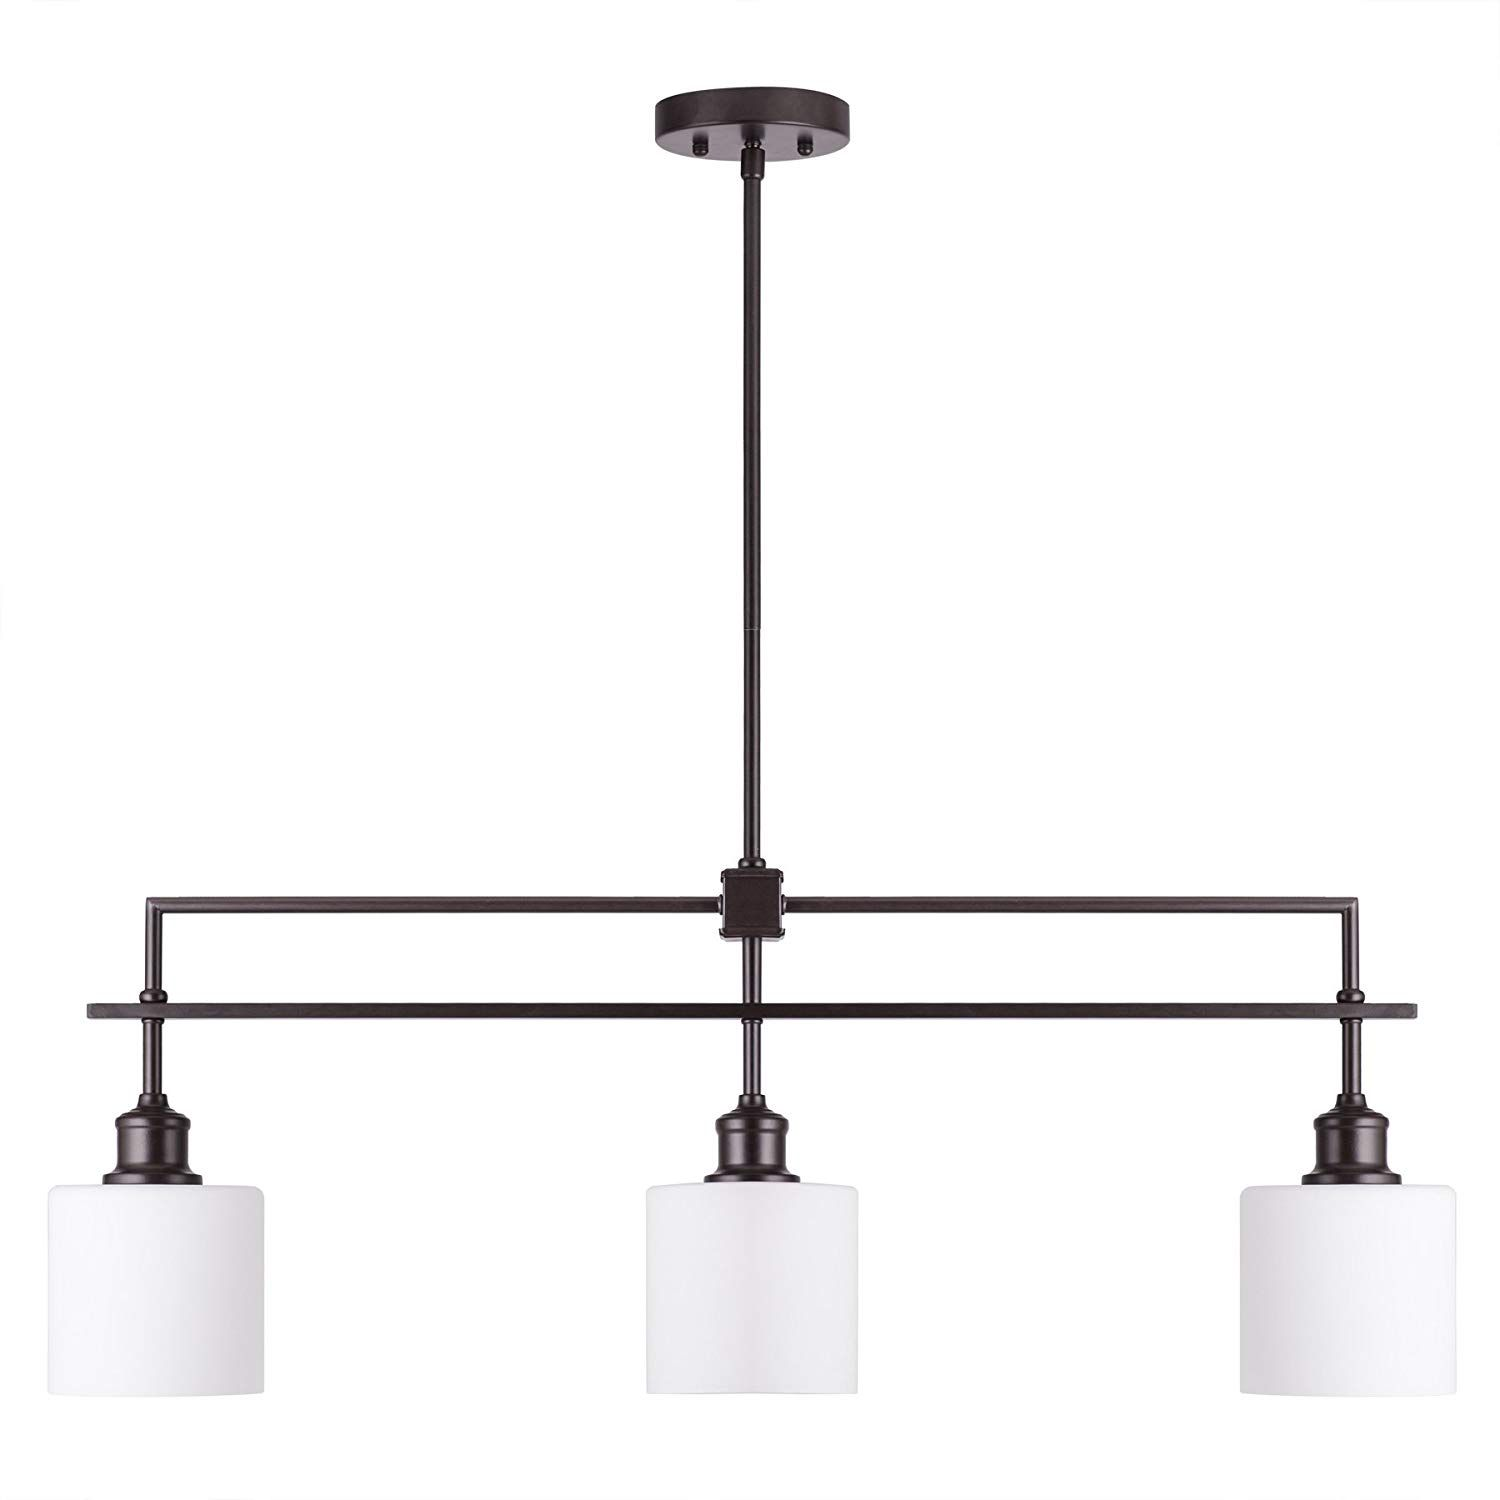 Co z oil rubbed bronze kitchen island lighting 3 light linear pendant island chandelier for billiard pool table dining room counter foyer modern hanging